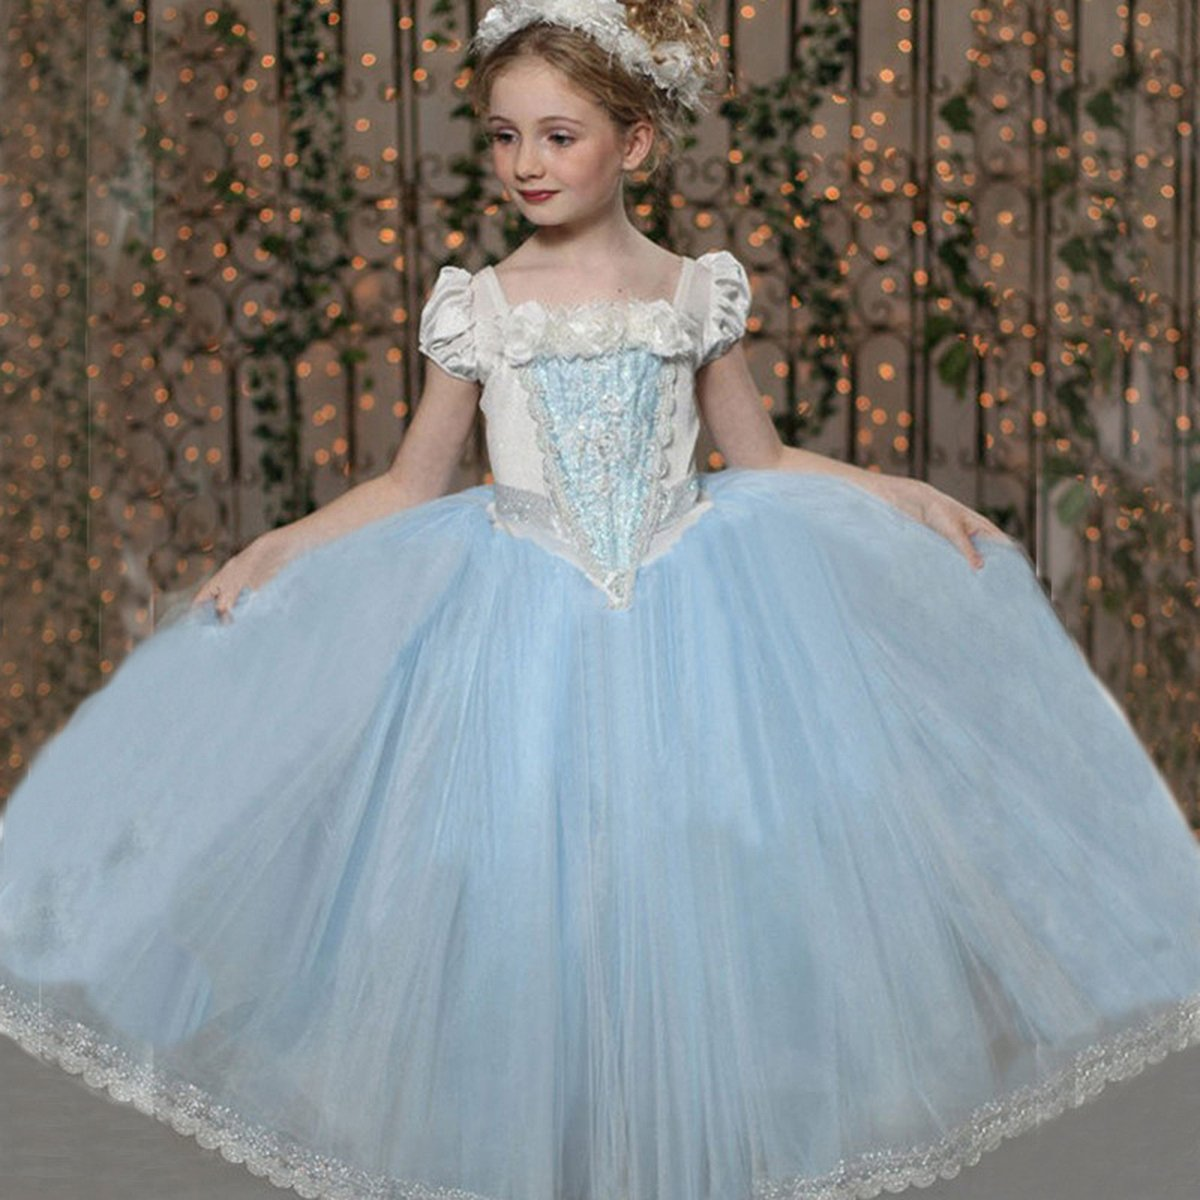 Flower Girls Princess Dress Kids Party Wedding Pageant Formal Tulle ...